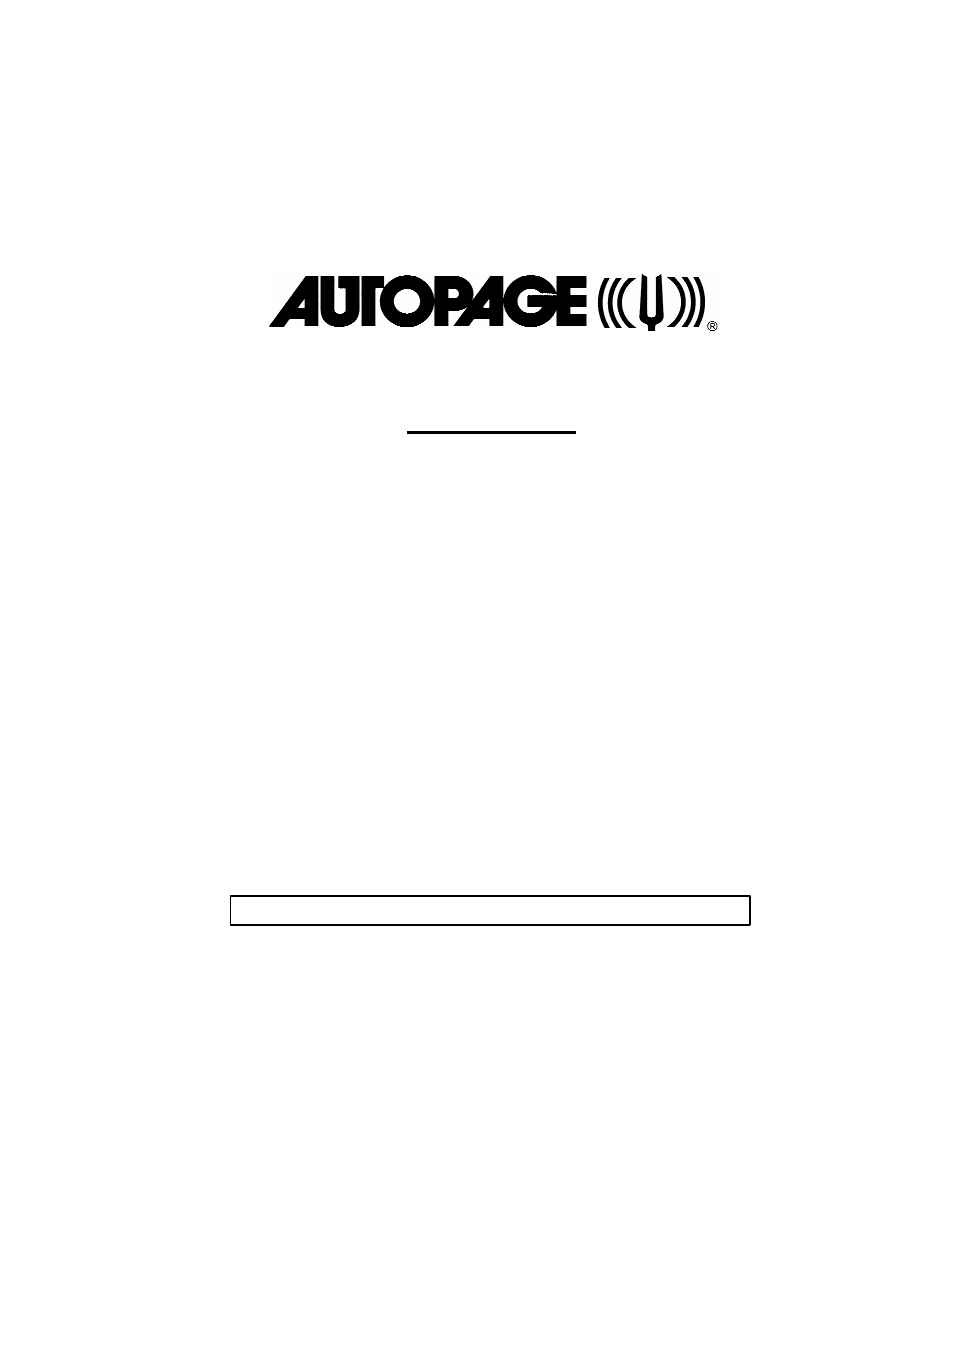 auto page rs 860 lcd page1 autopage 727 wiring diagram efcaviation com 1972 Corvette Ignition Wiring Diagram at gsmx.co